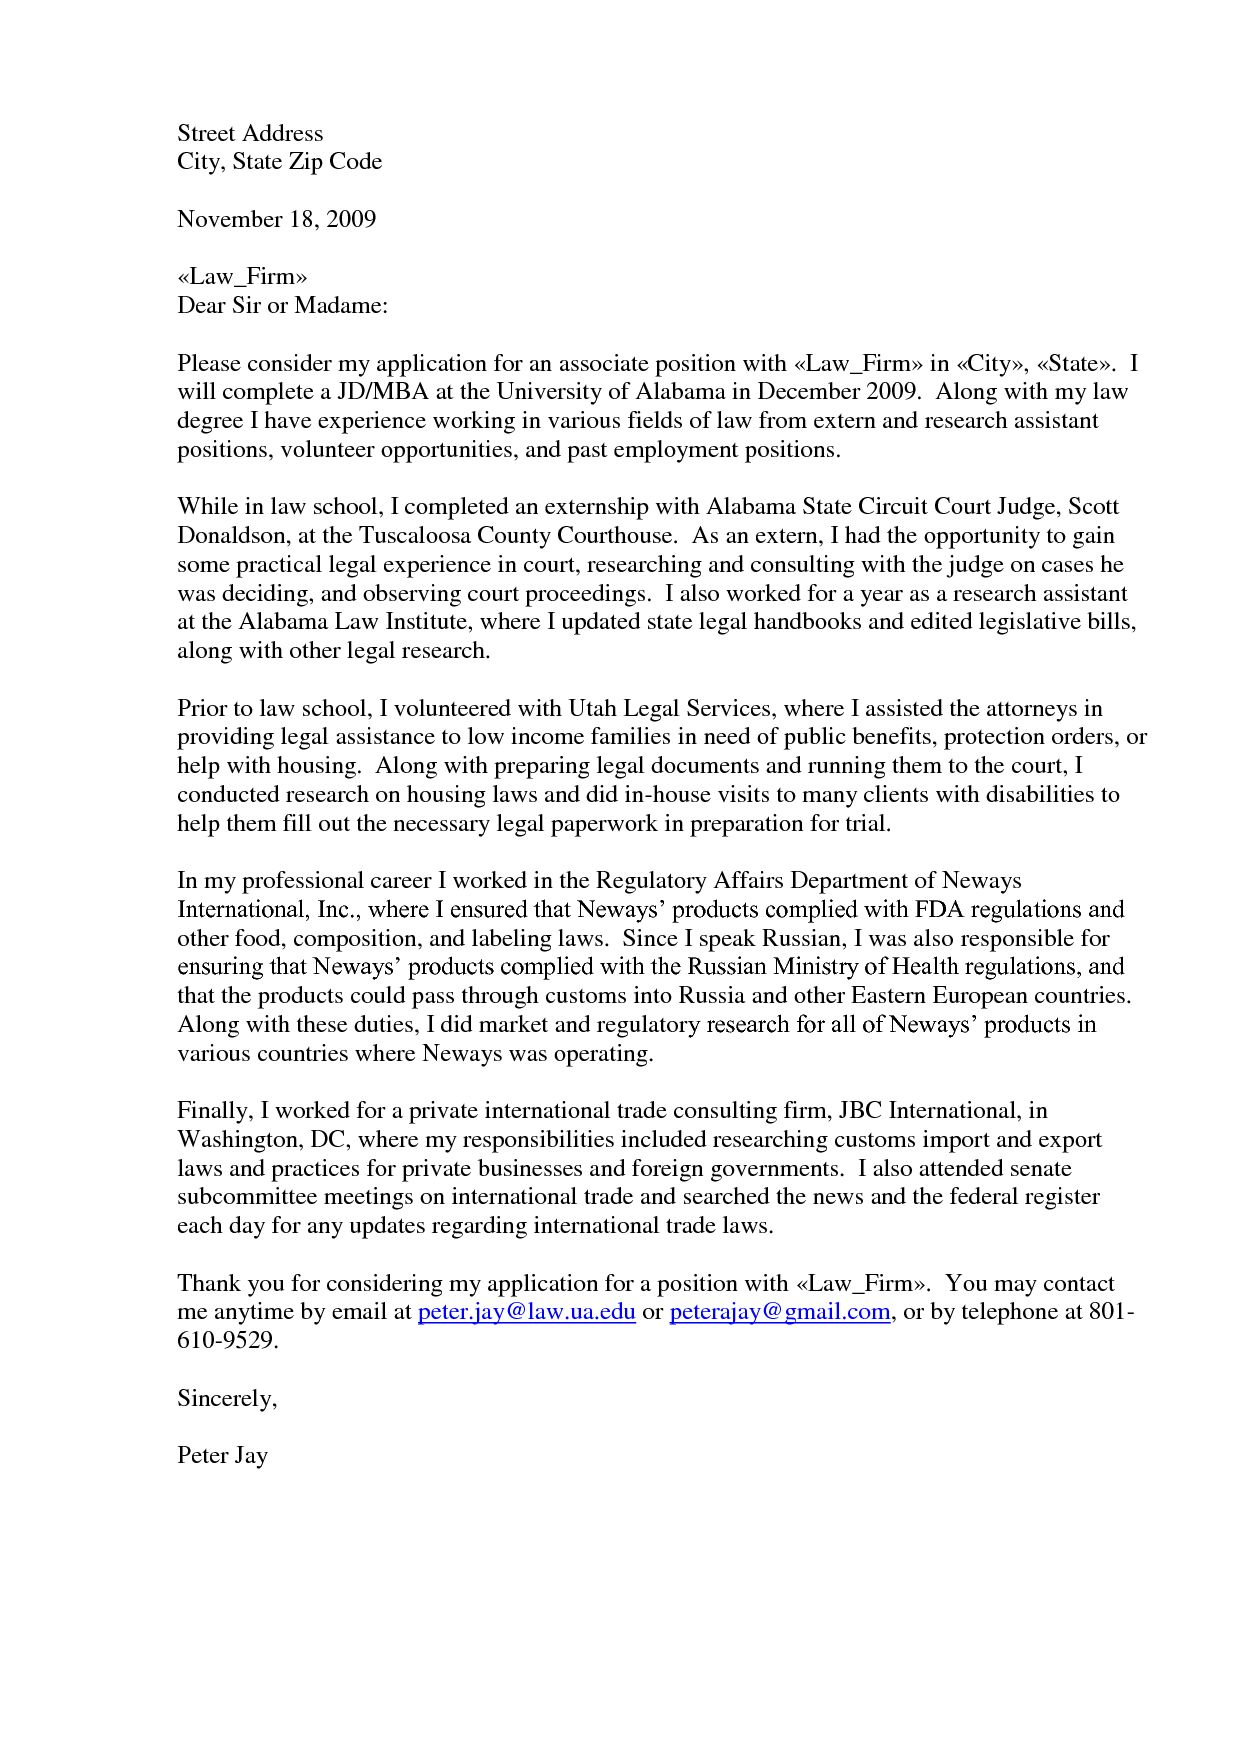 23+ Cover Letter For Law Firm | Cover Letter Resume | Pinterest ...